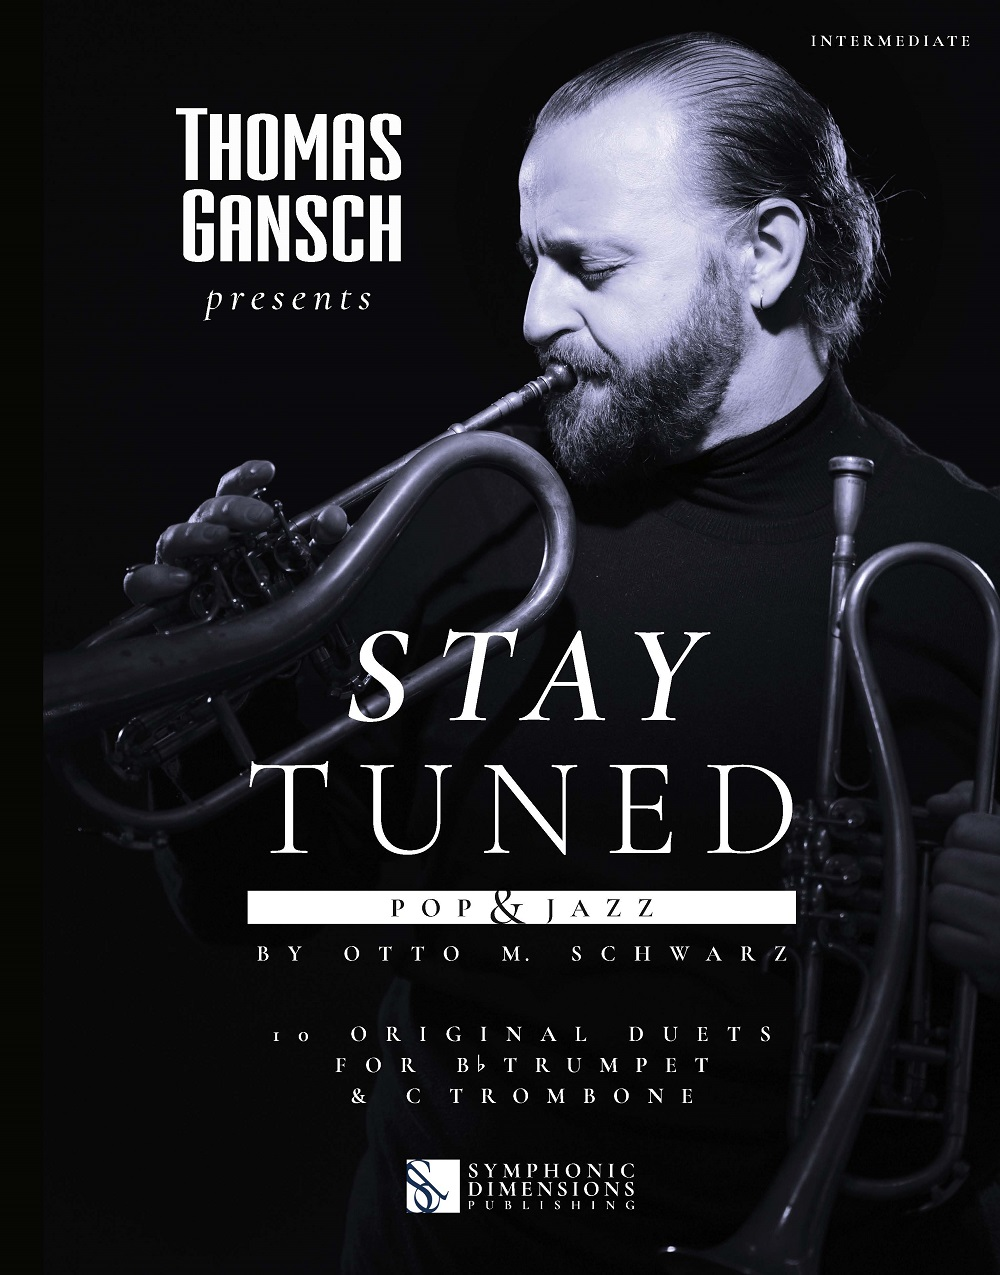 Otto M. Schwarz: Thomas Gansch presents Stay Tuned - Pop & Jazz: Mixed Brass